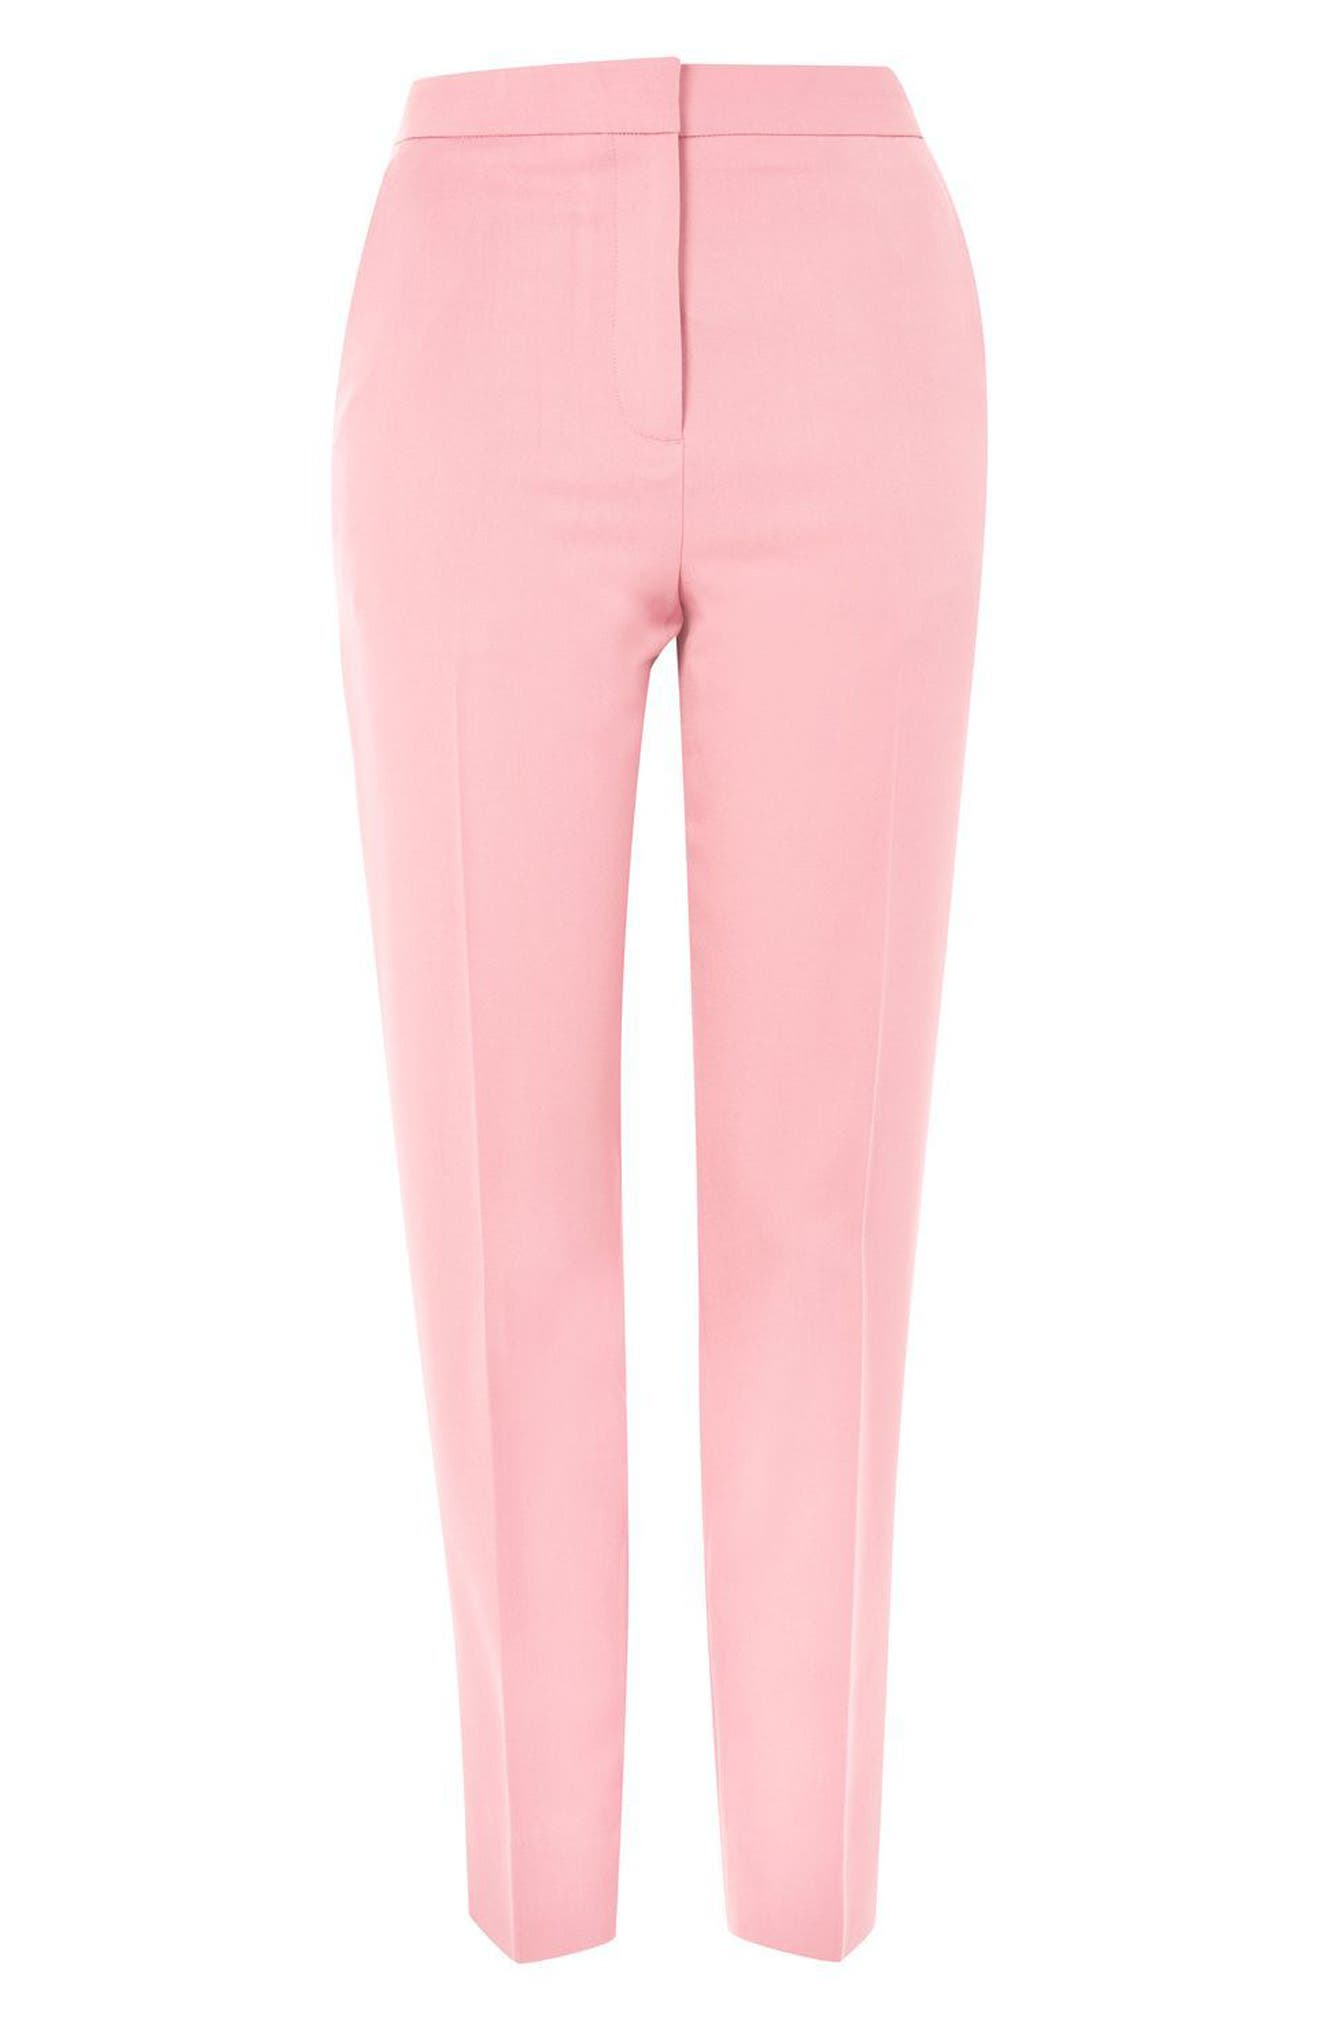 Tailored Cigarette Trousers,                             Alternate thumbnail 4, color,                             Pink